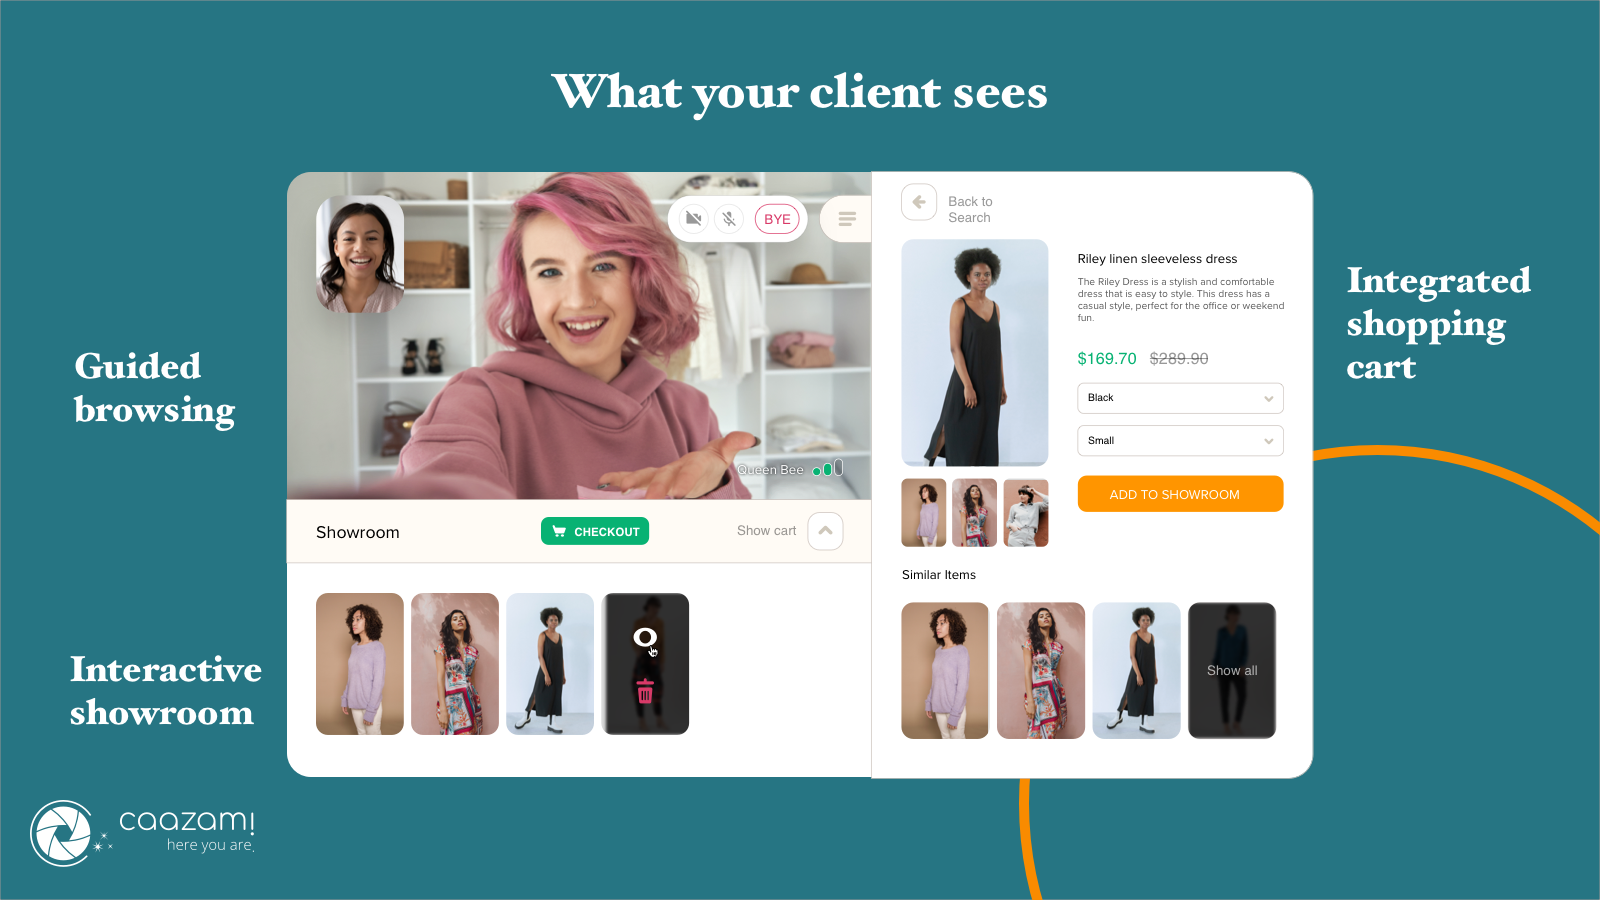 What Your Client Sees - Video-based Shopping Experience